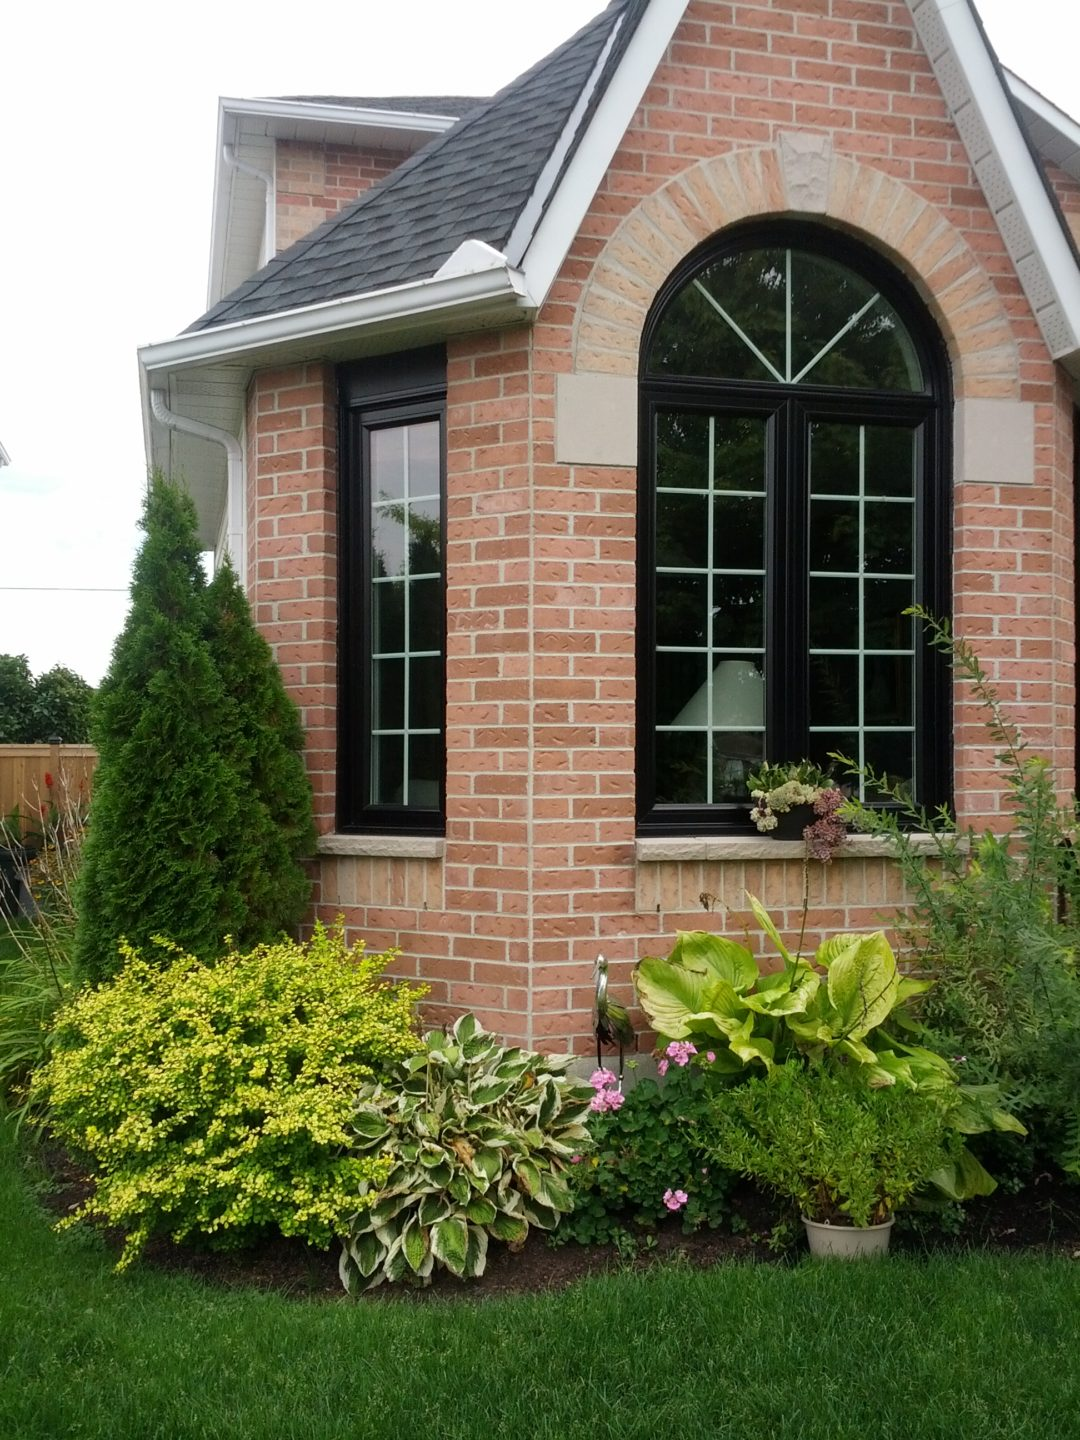 Replacement Windows with Dramatic Flair